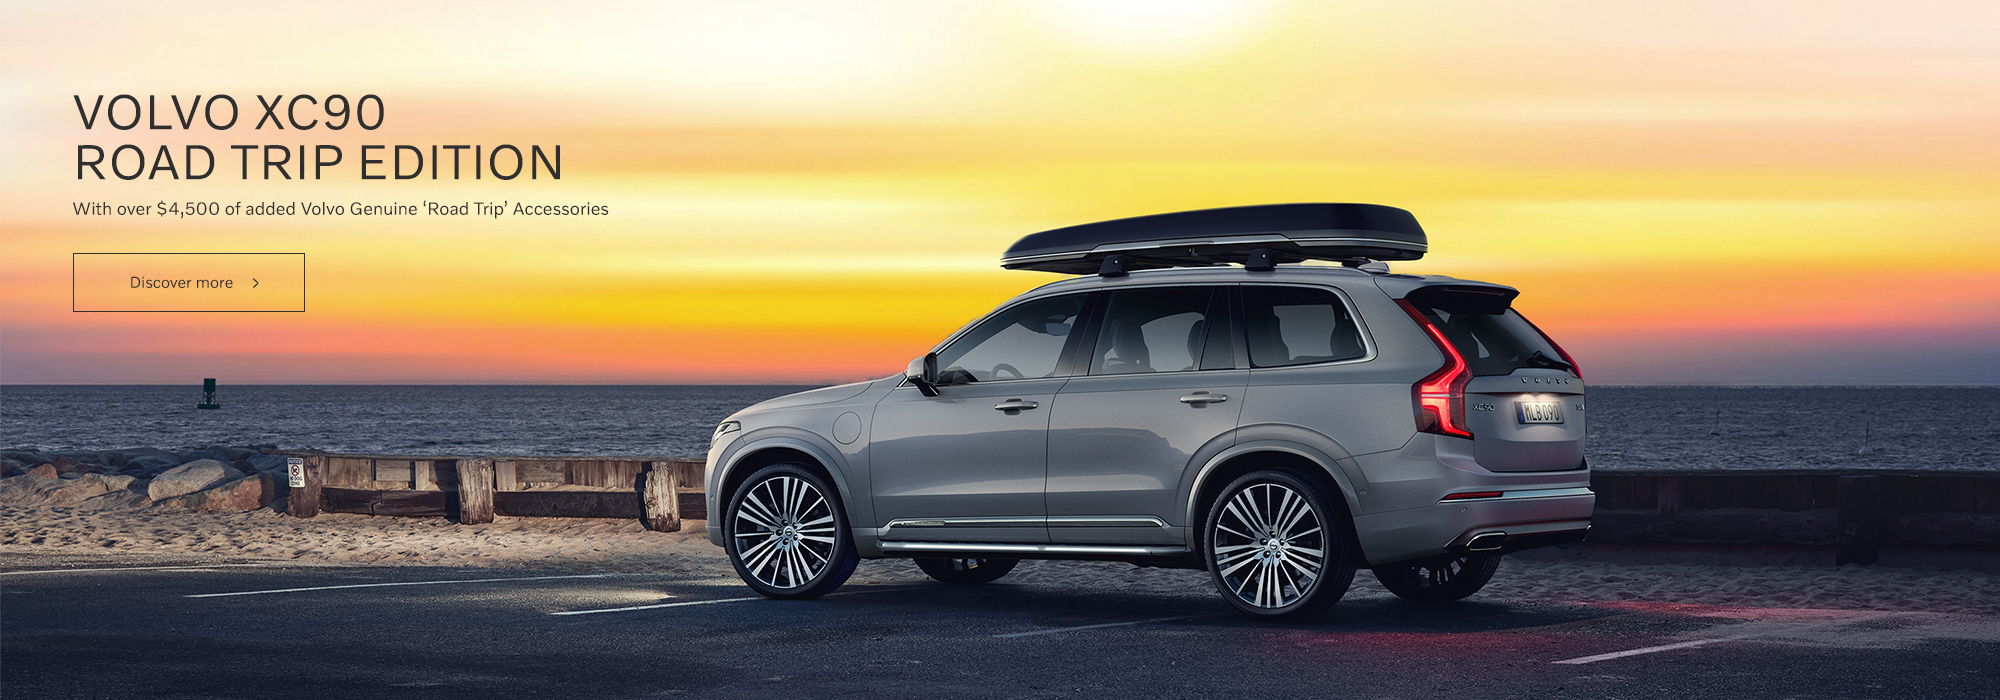 The Volvo XC90 Road Trip Edition, with over $4,500 of added 'road trip' value.